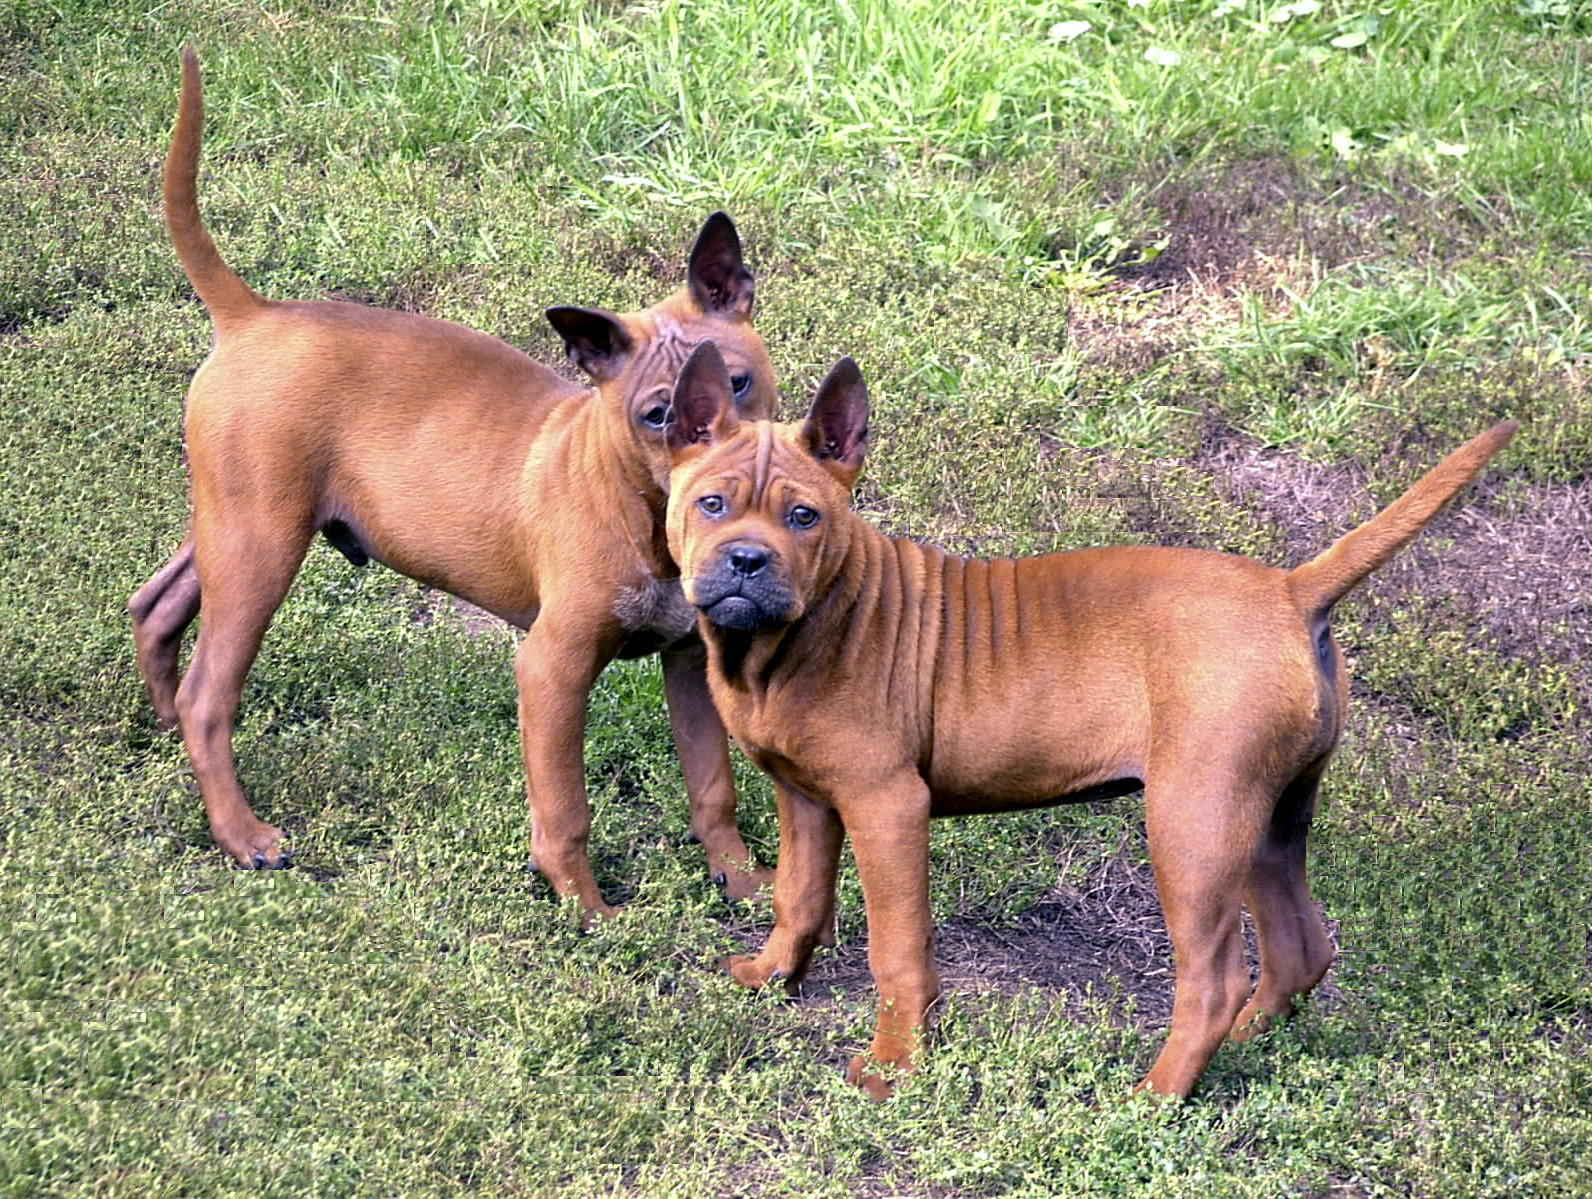 Chinese Chongqing dogs are hard to find